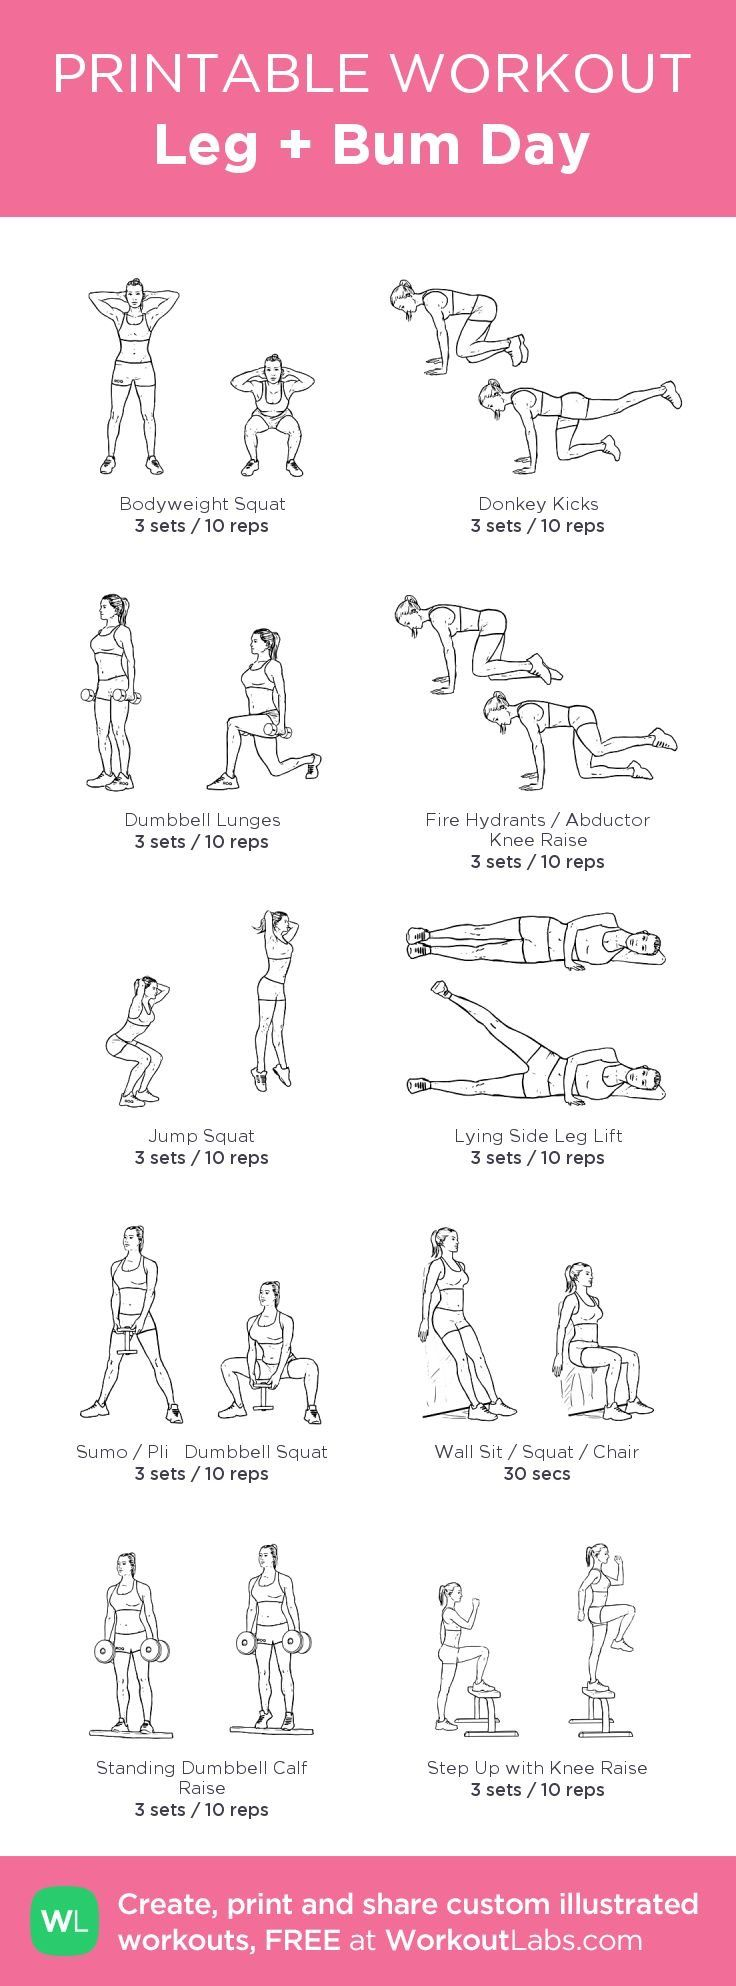 The 25+ best Printable workouts ideas on Pinterest | Gym workouts ...